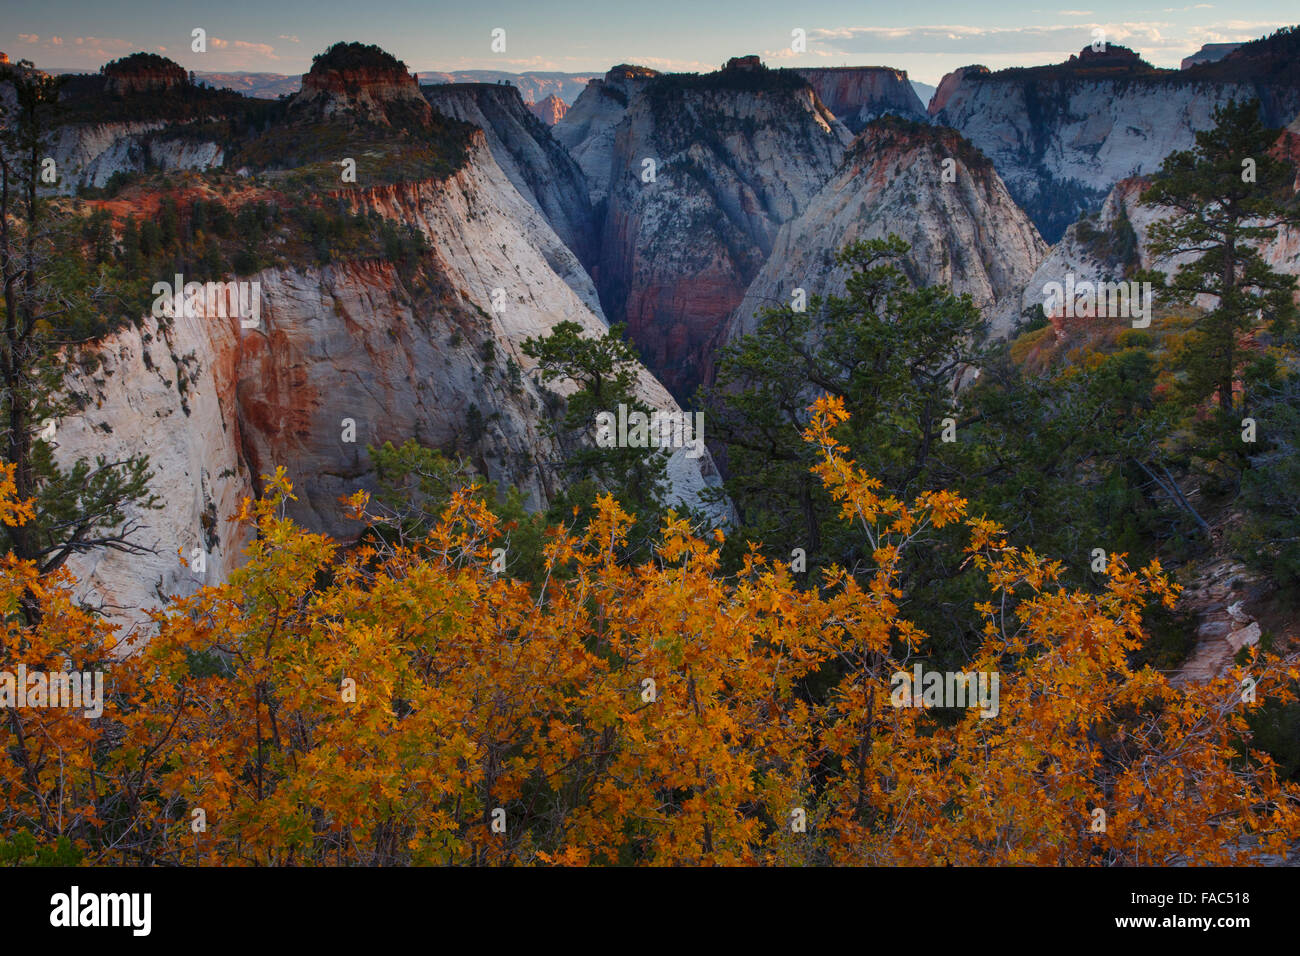 Behunin Canyon from the West Rim Trail, Zion National Park, Utah. - Stock Image